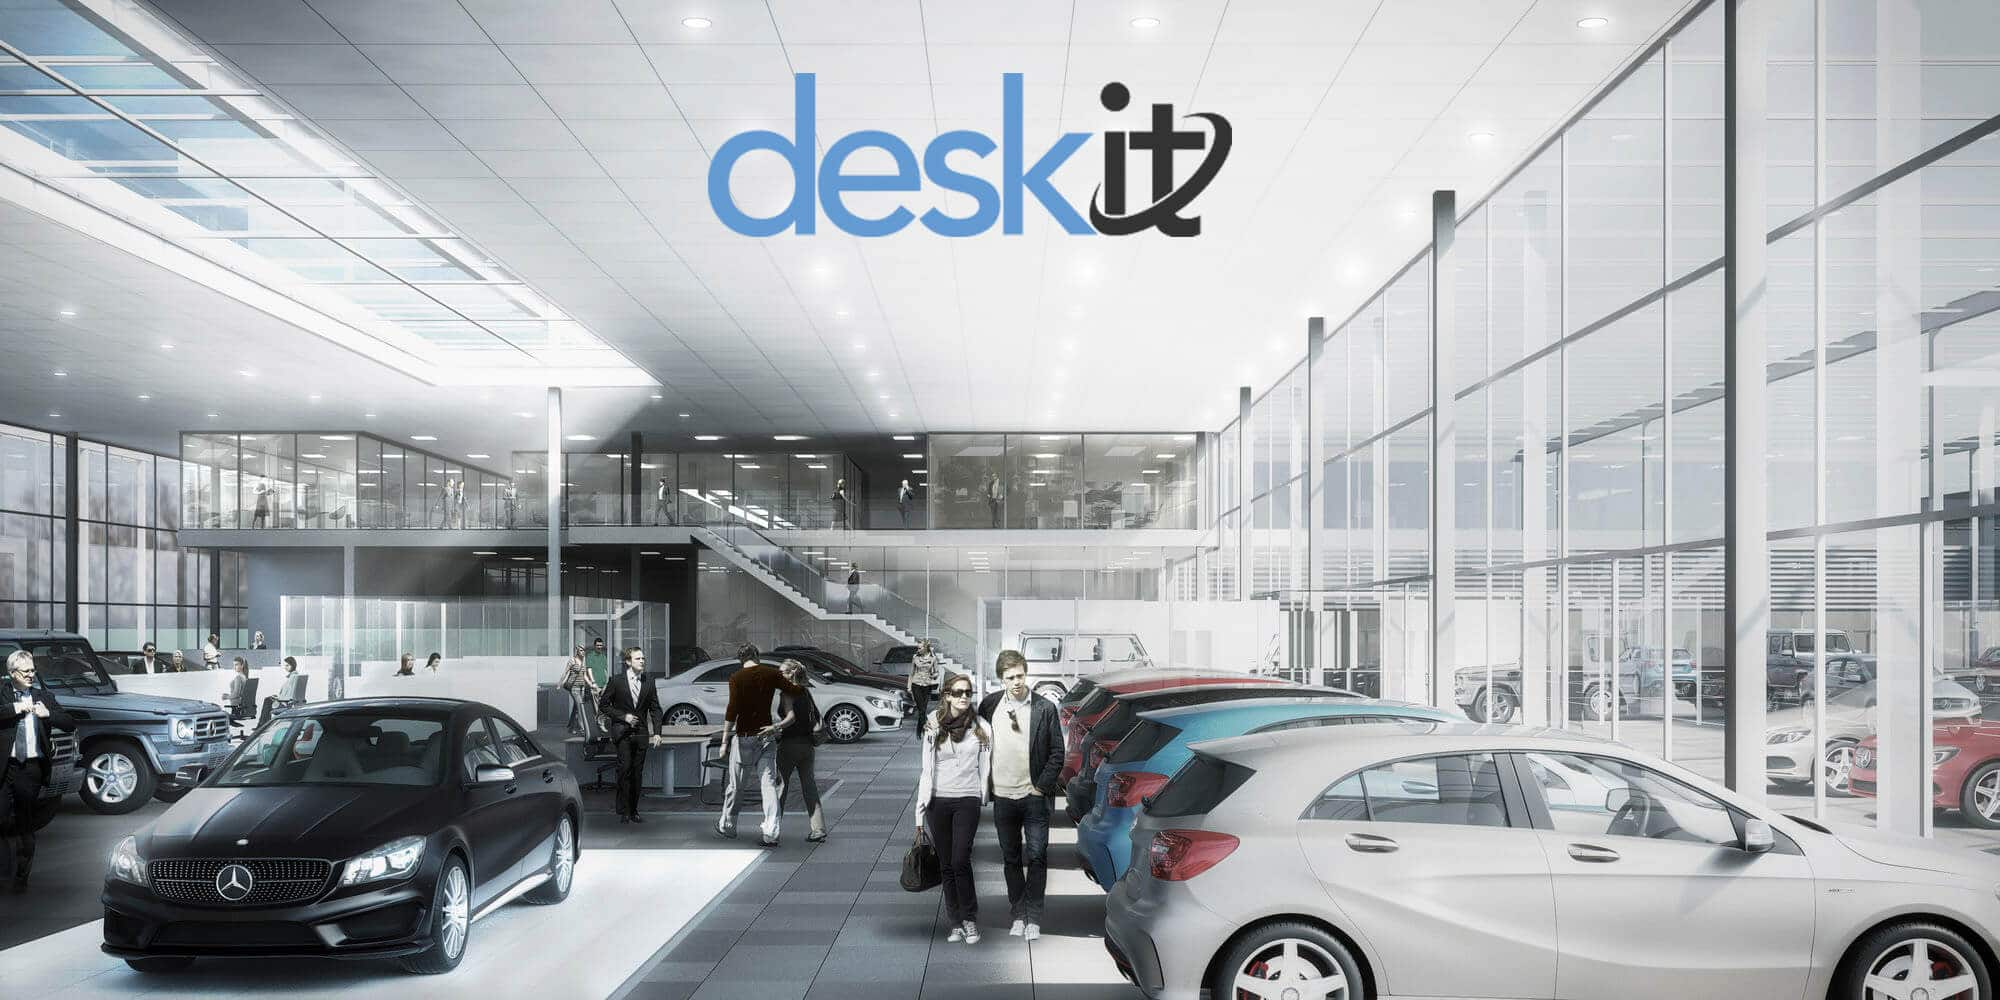 Reynolds partners with DealerCorp to deploy deskit & stockit